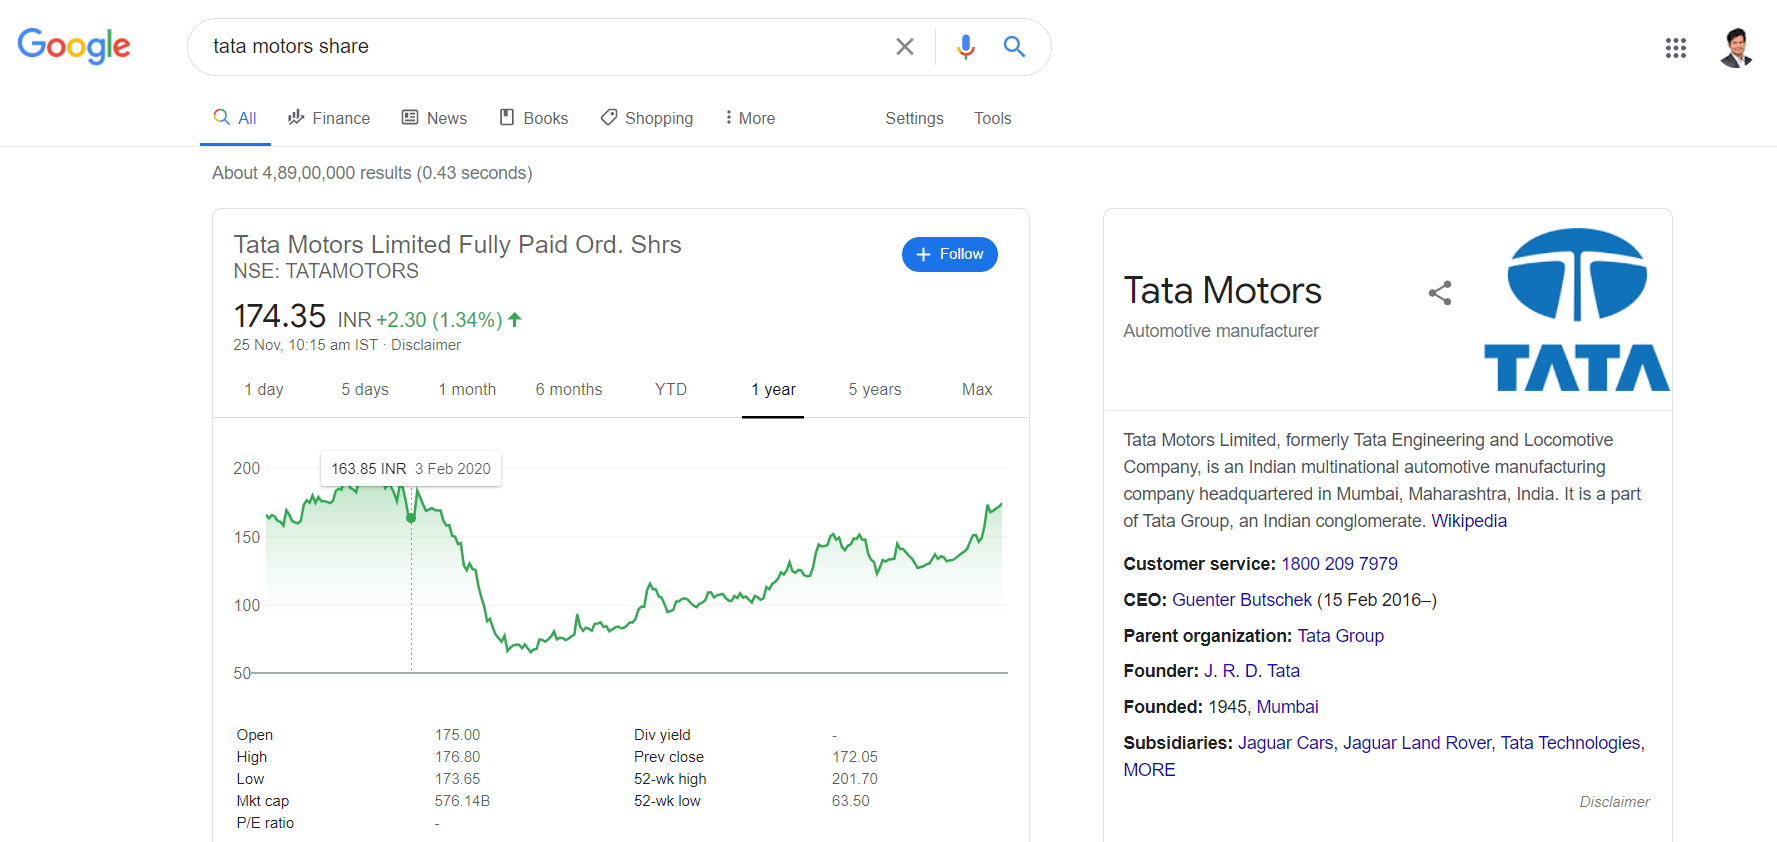 tata motors share price nov 2020